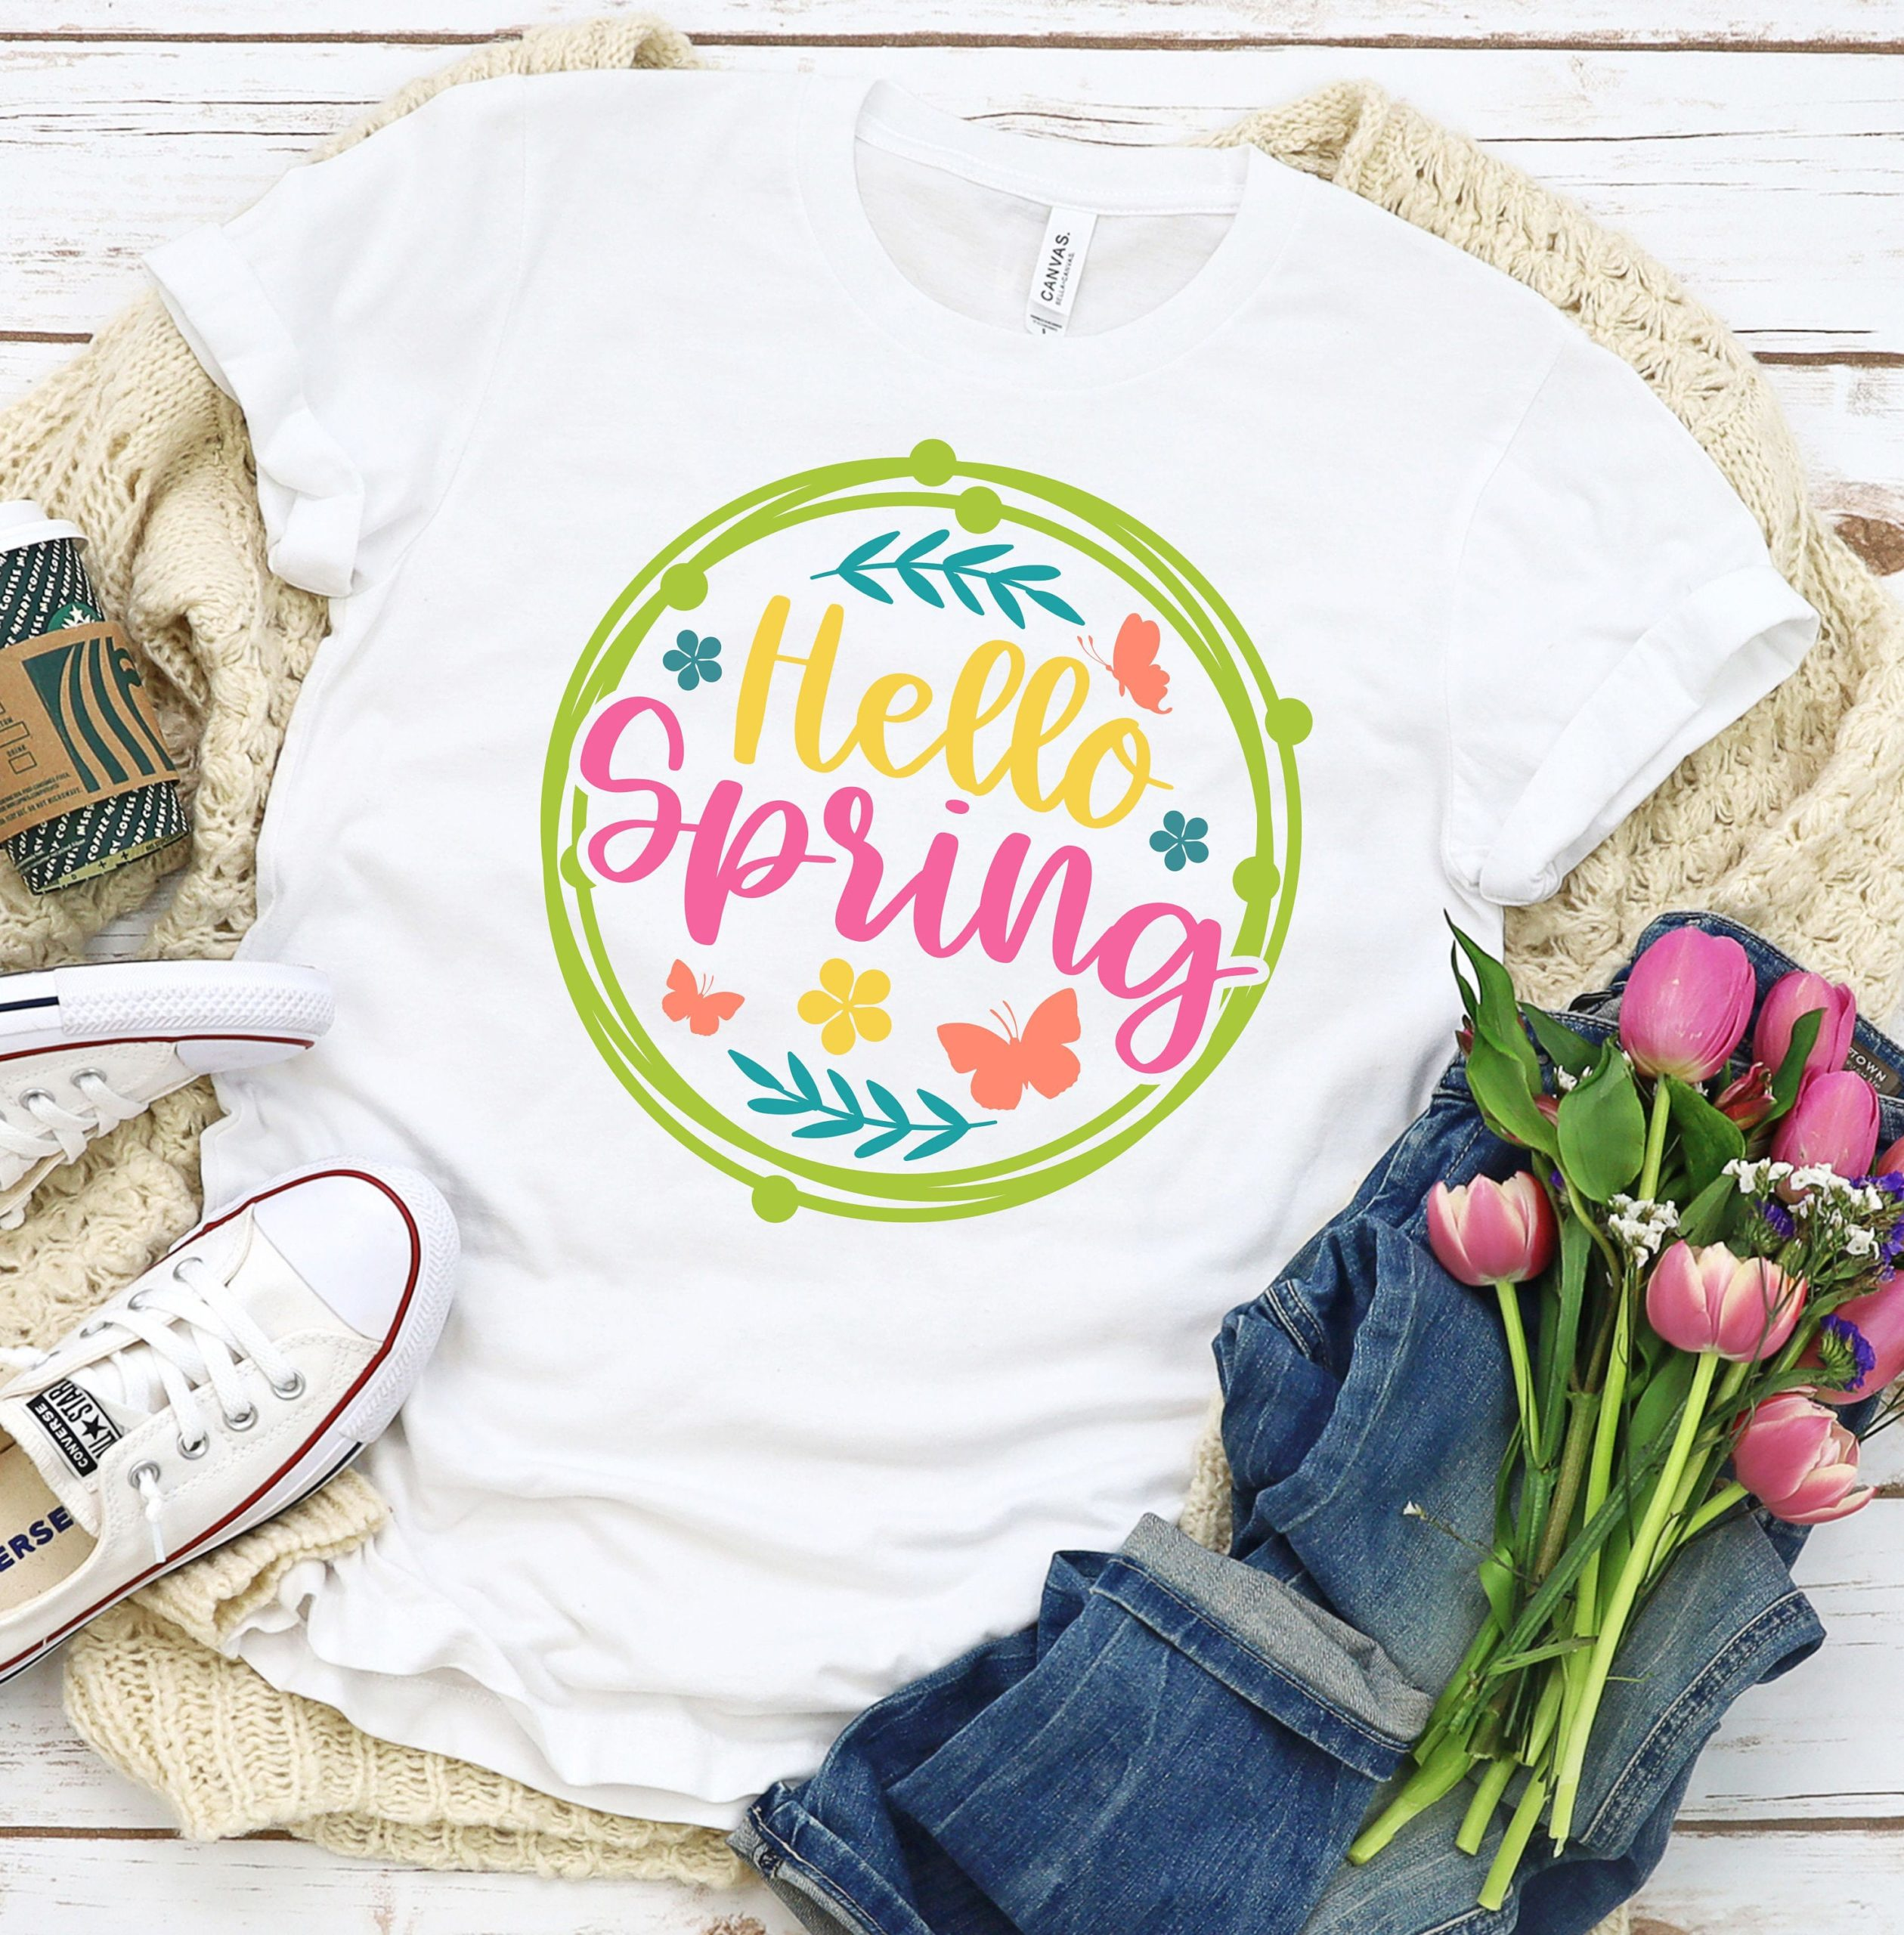 Spring-svg-hello-spring-frame-svg-hello-spring-svg-butterfly-svg-flowers-svg-spring-svg-design-spring-cut-file-spring-cricut-60513aa2